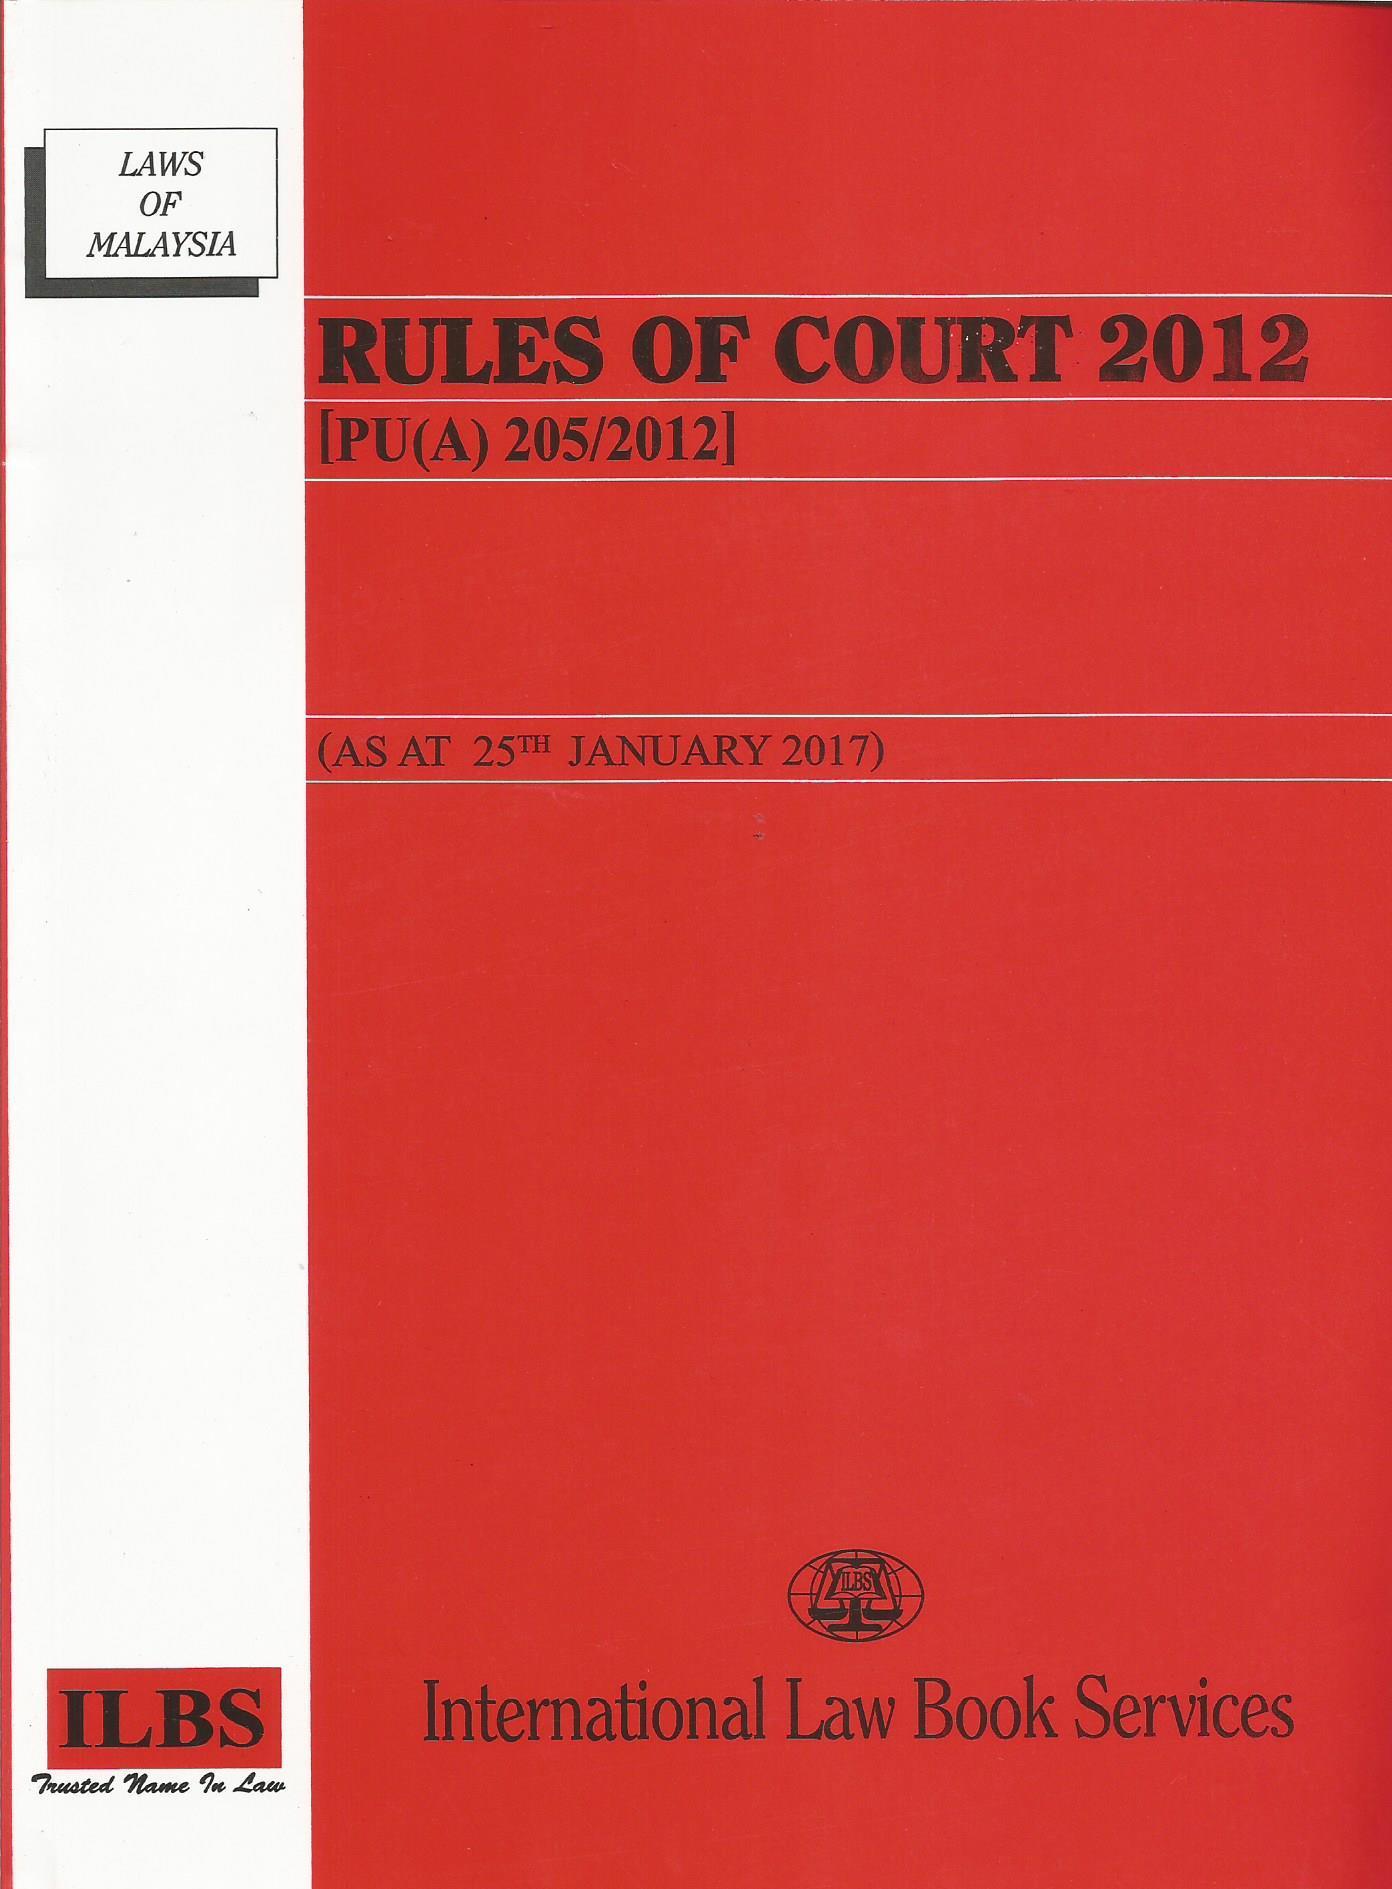 rules of court rm55 1.150001.jpg